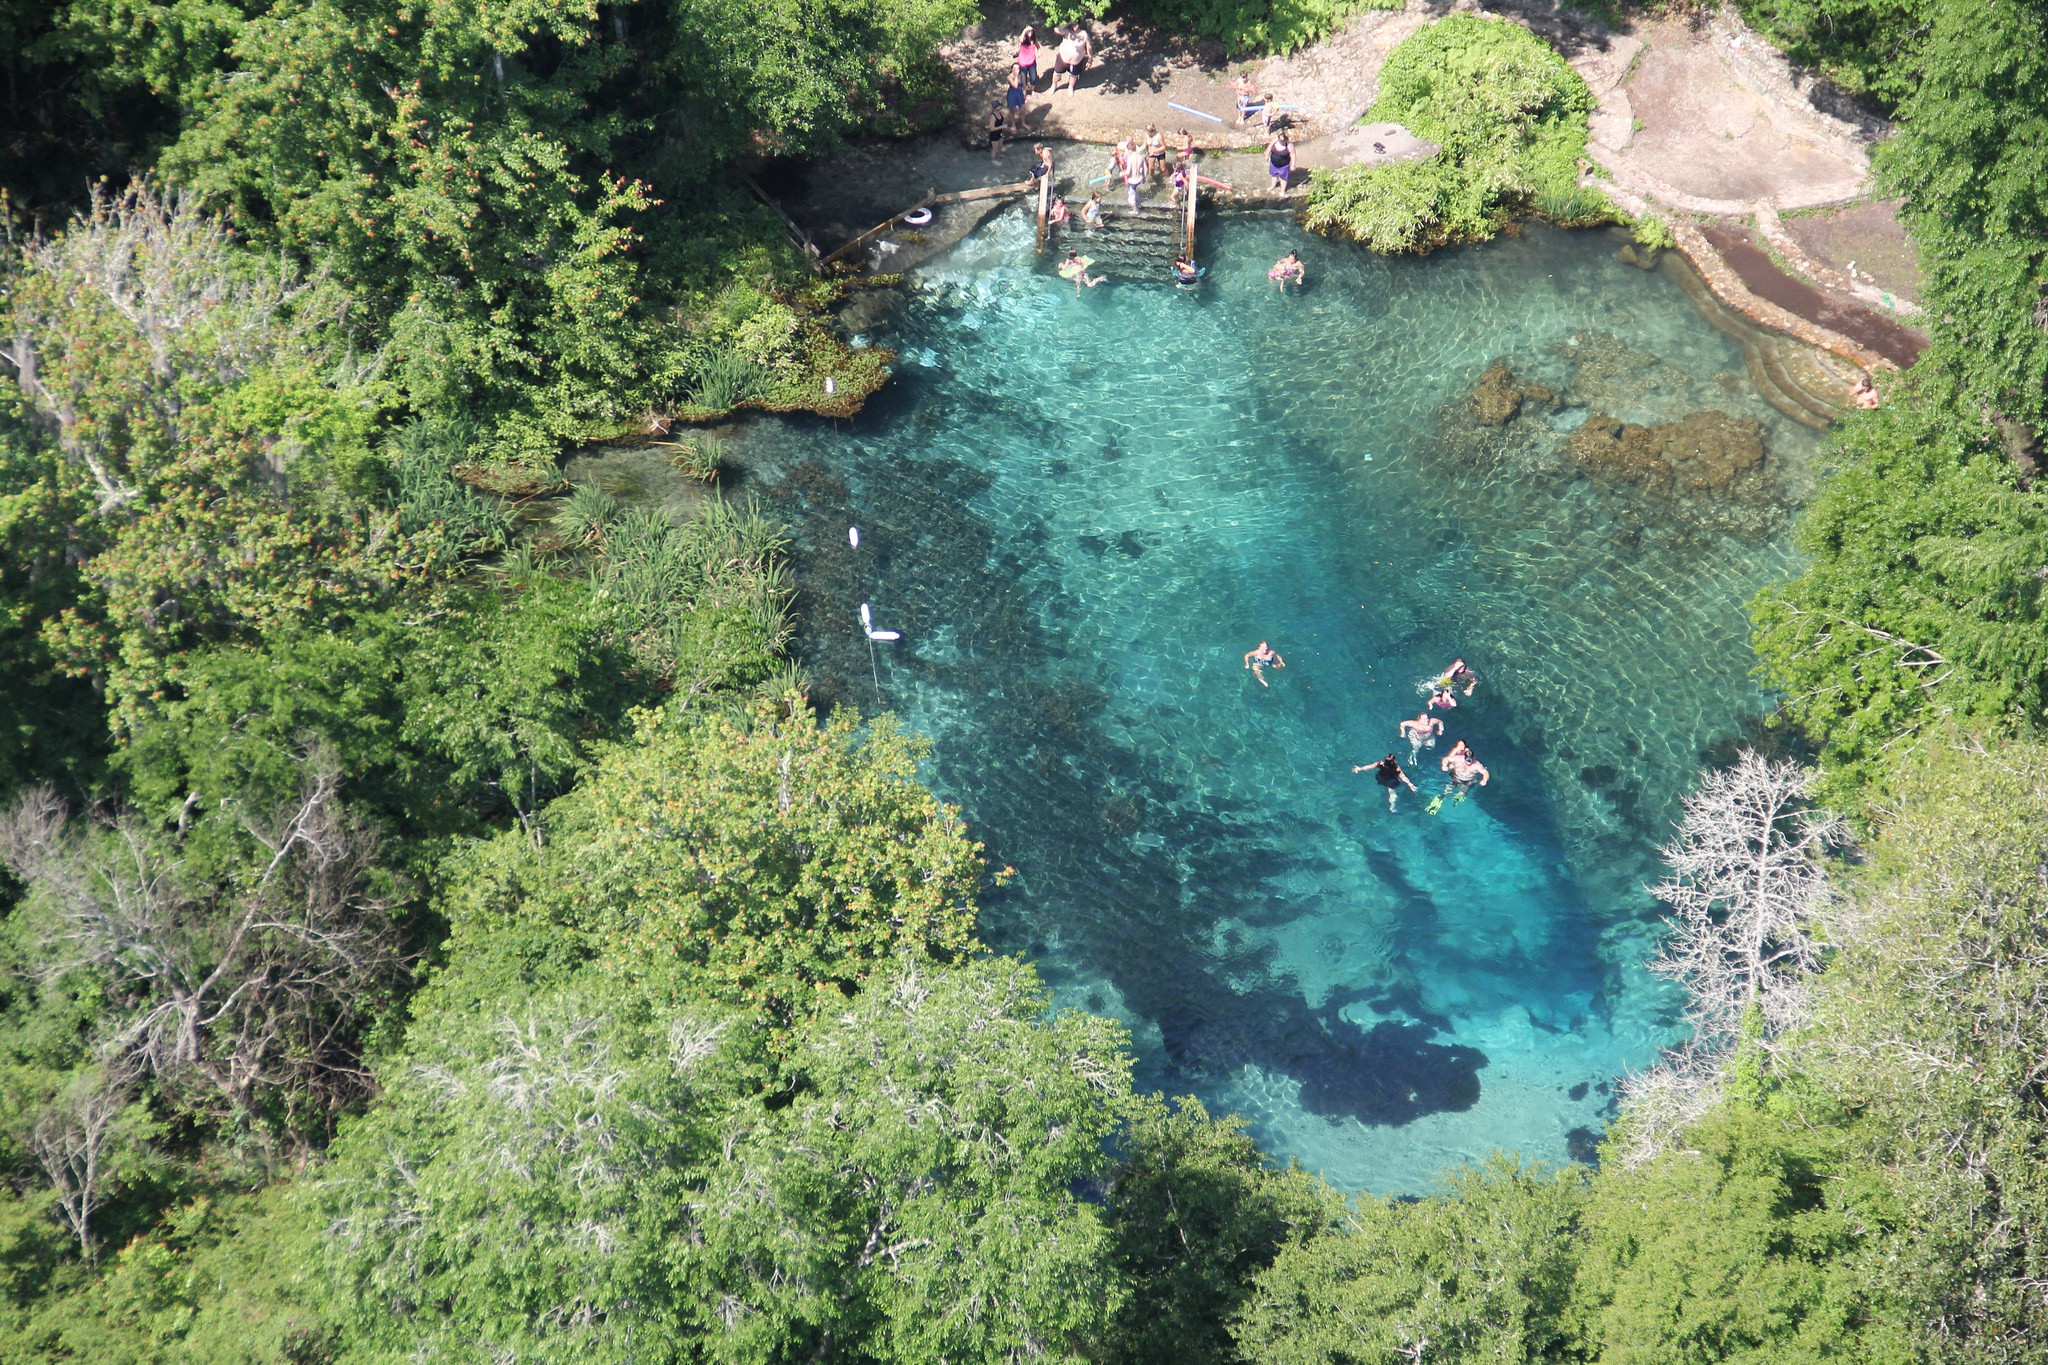 19 Incredible Freshwater Springs in Florida on kingwood map, galveston map, iran map, league city map, missouri city map, manor map, weslaco map, caldwell map, nacogdoches map, lackland map, katy map, andrews afb map, temple map, kelly new mexico, new braunfels map, plano map, wichita falls map, schertz map, port isabel map, granbury map,